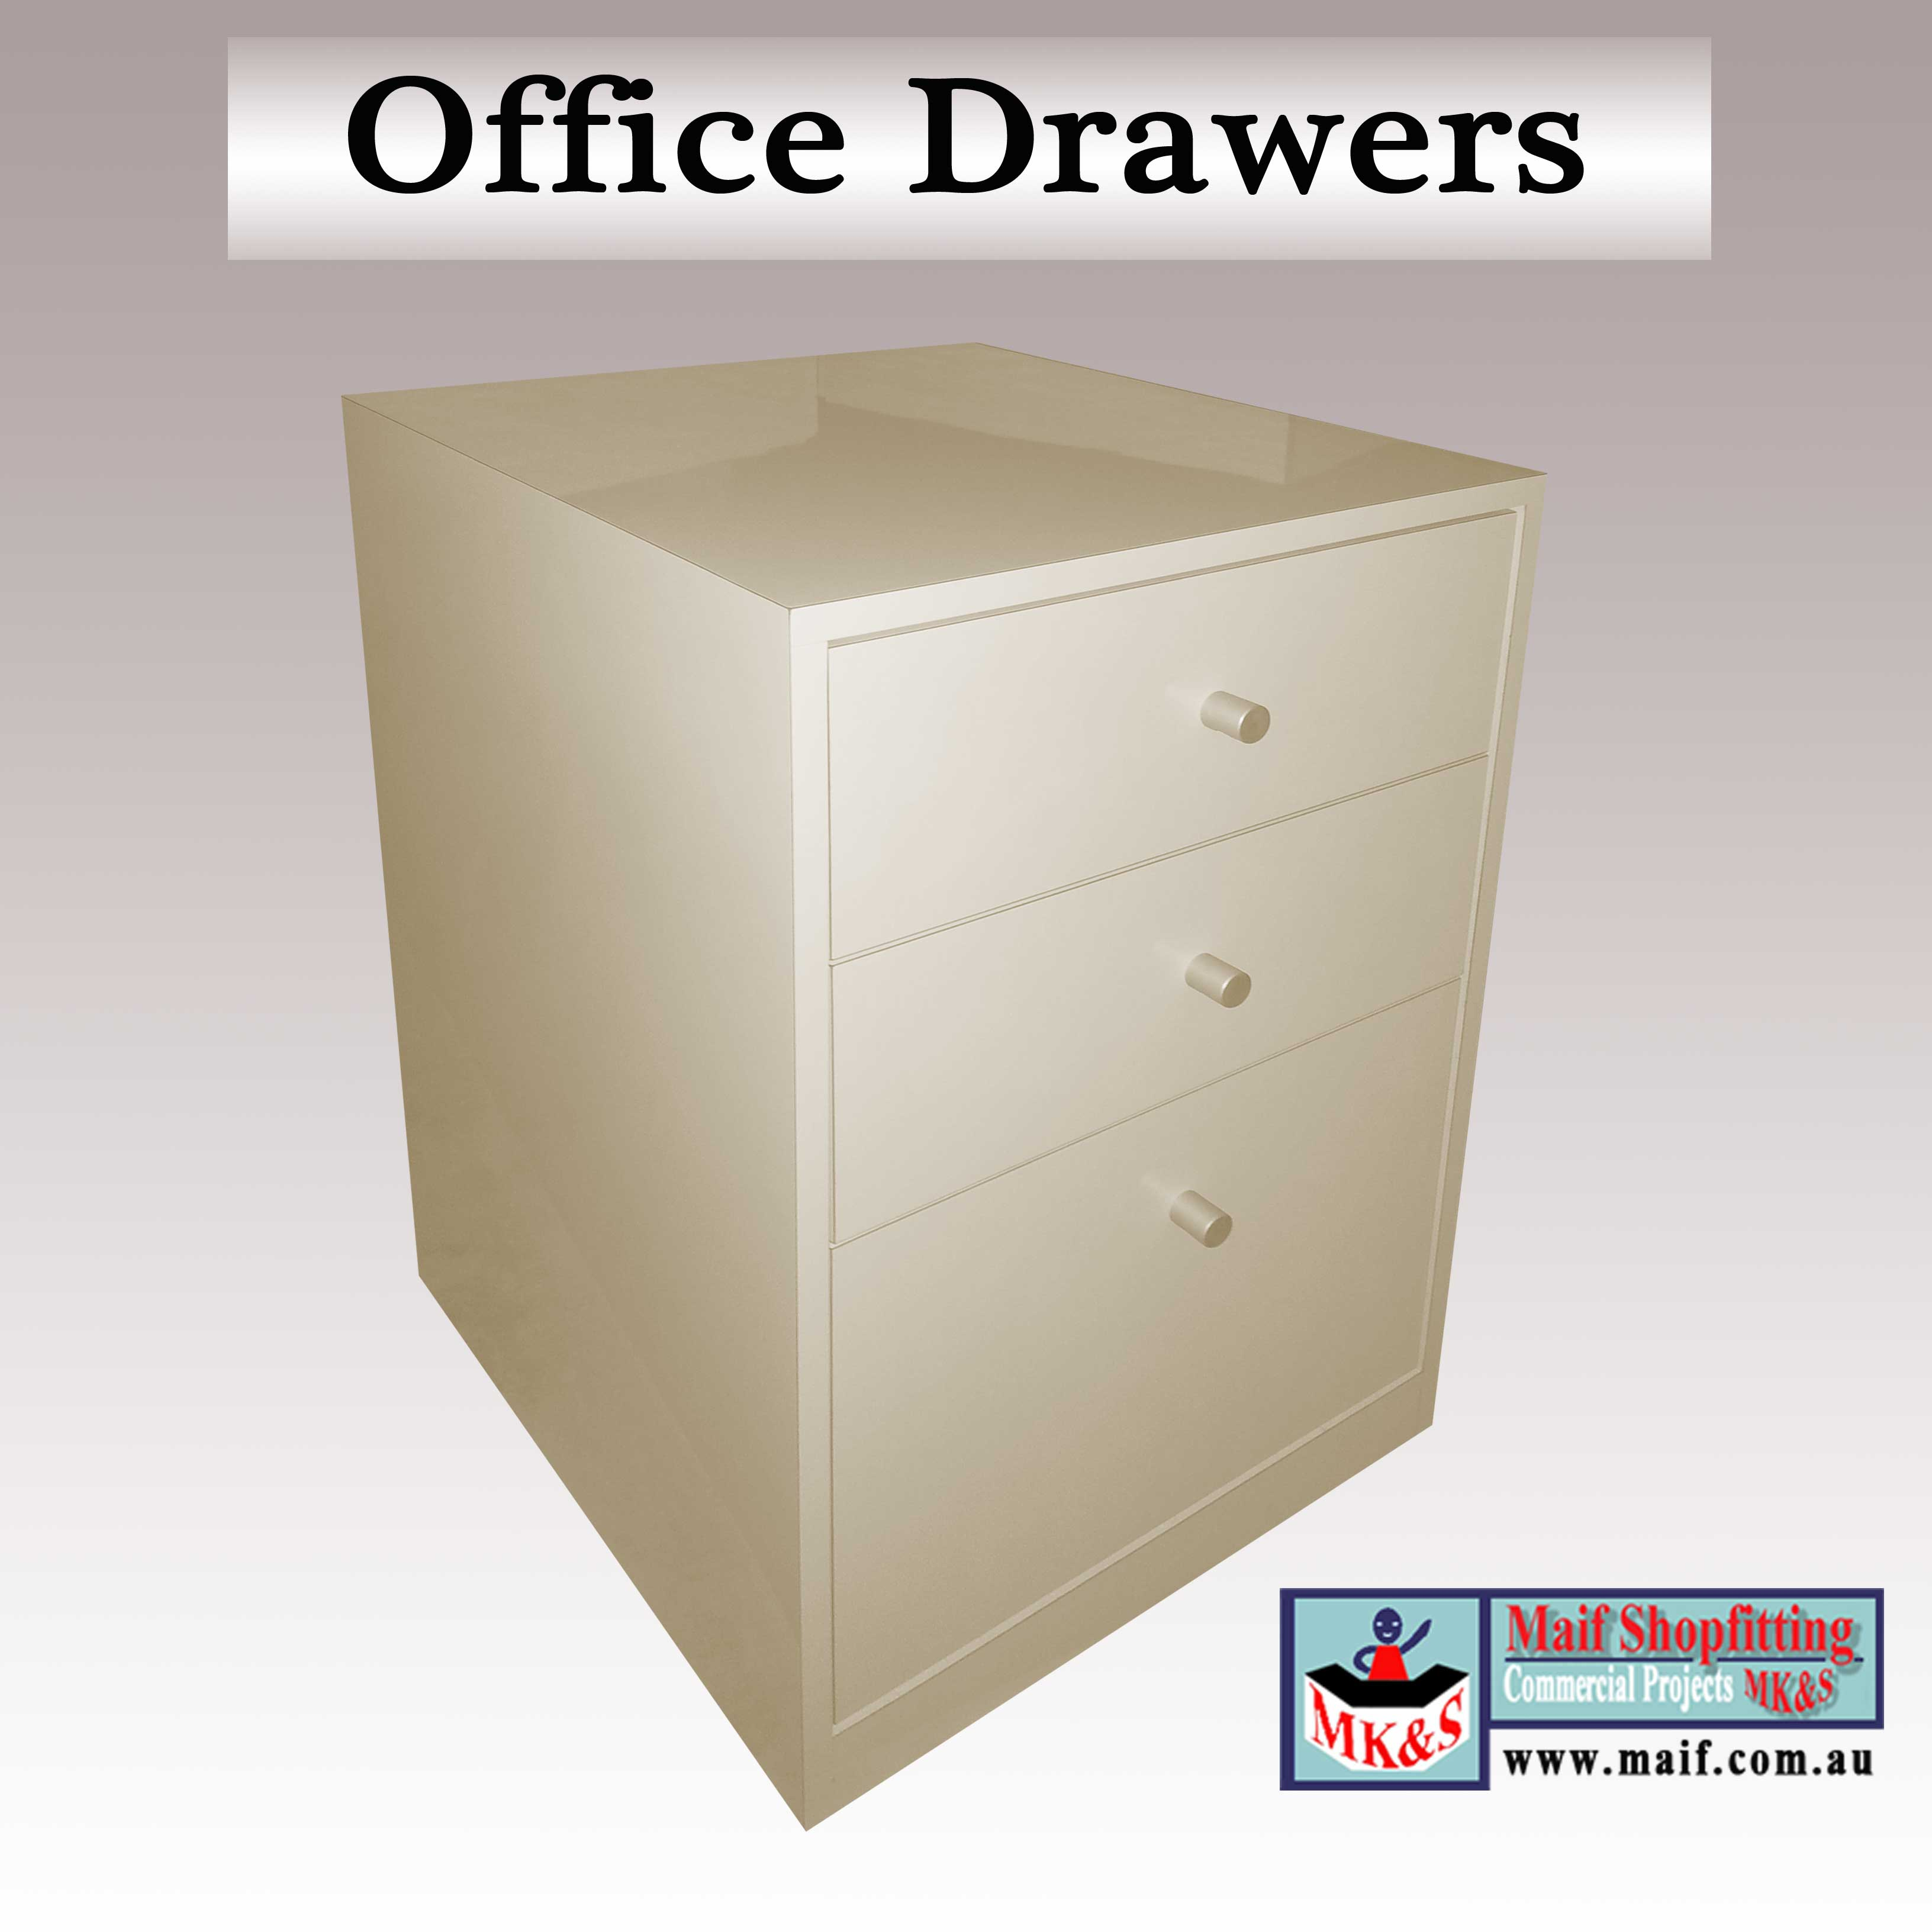 dp cabinet drawer office amazon business file com mini holder products card